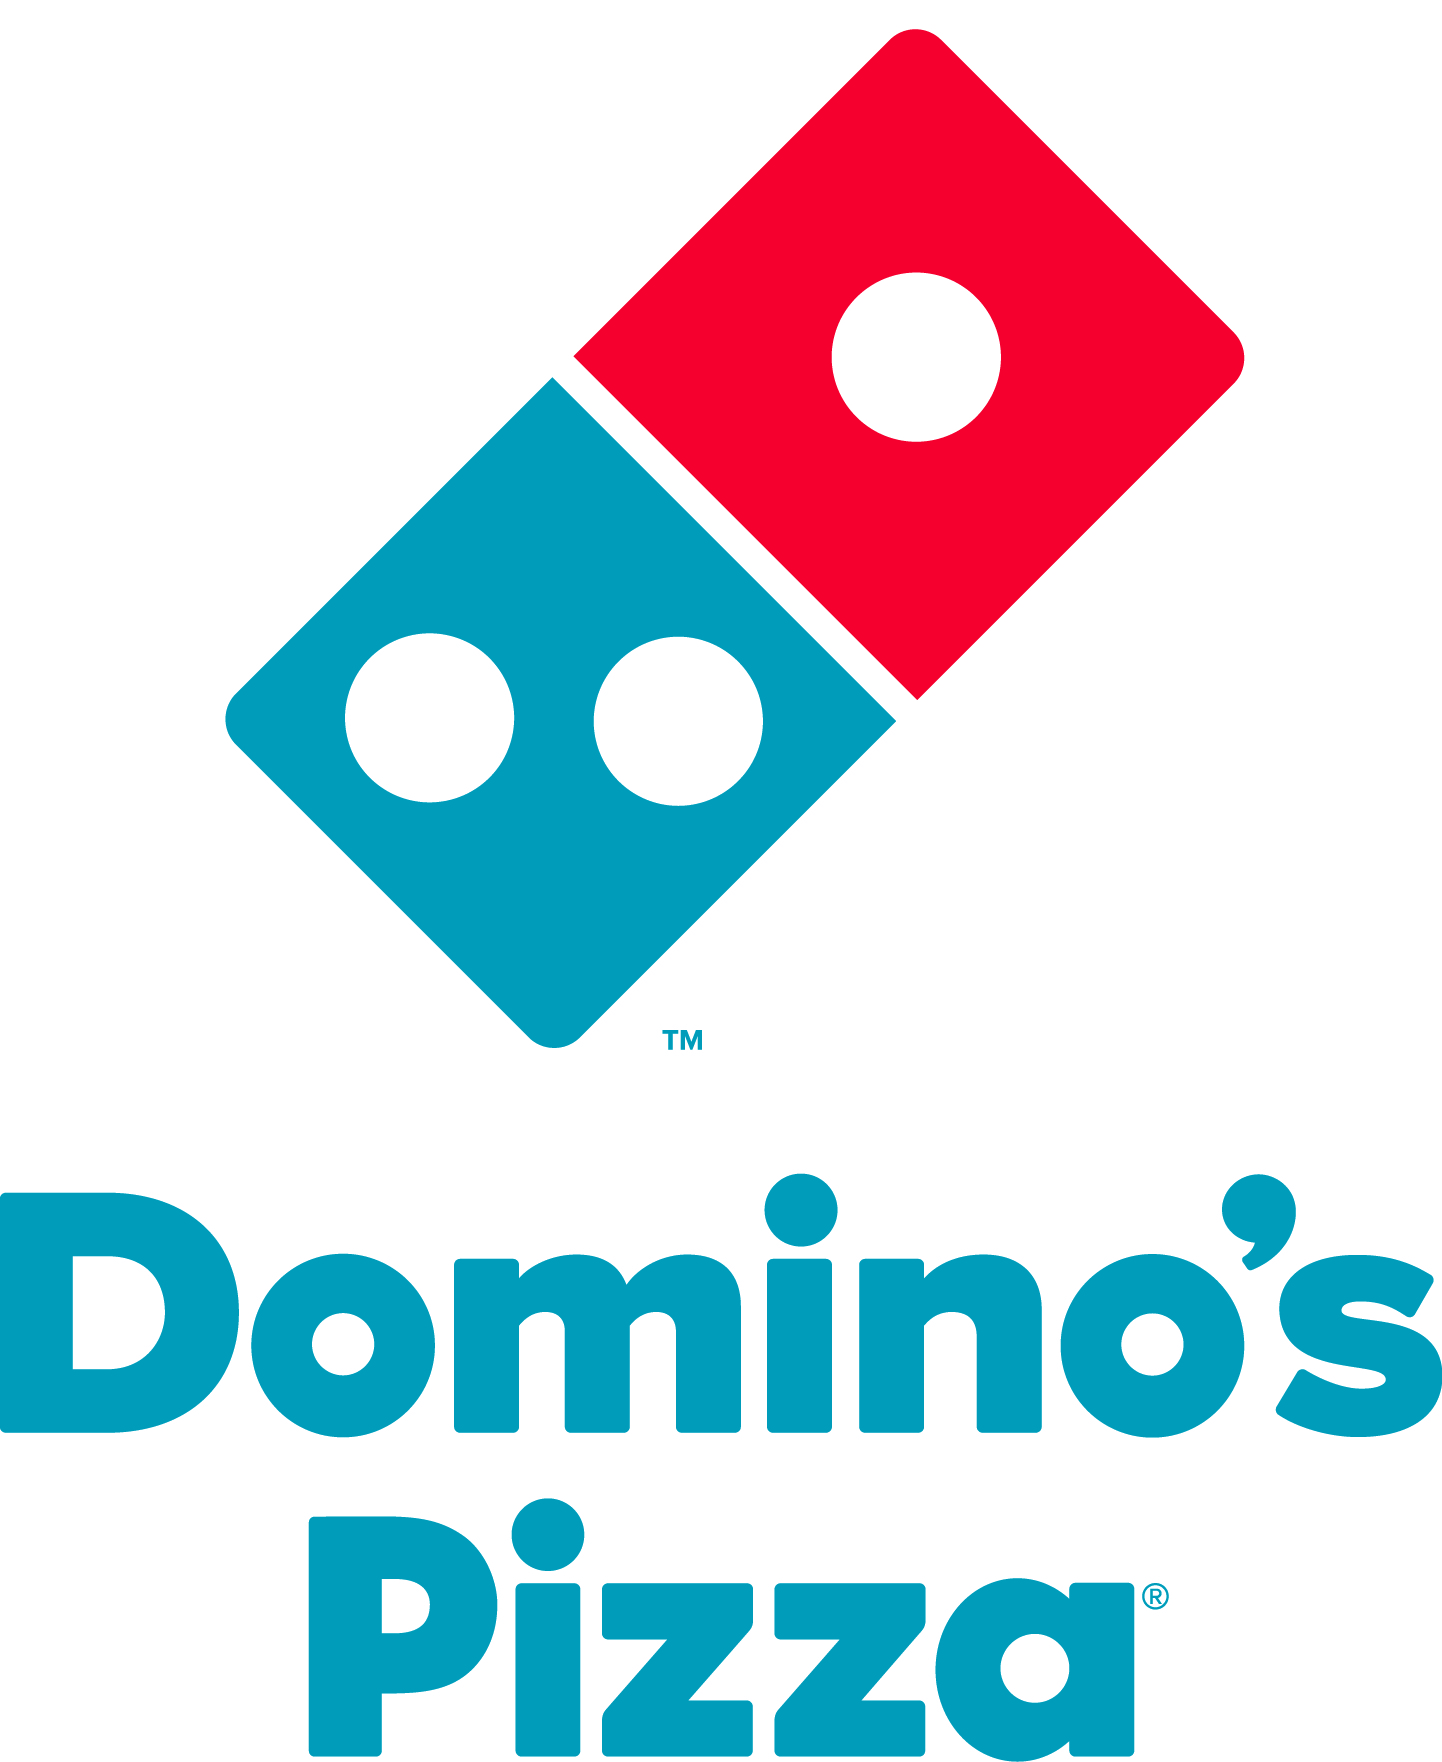 Dominos Pizza image